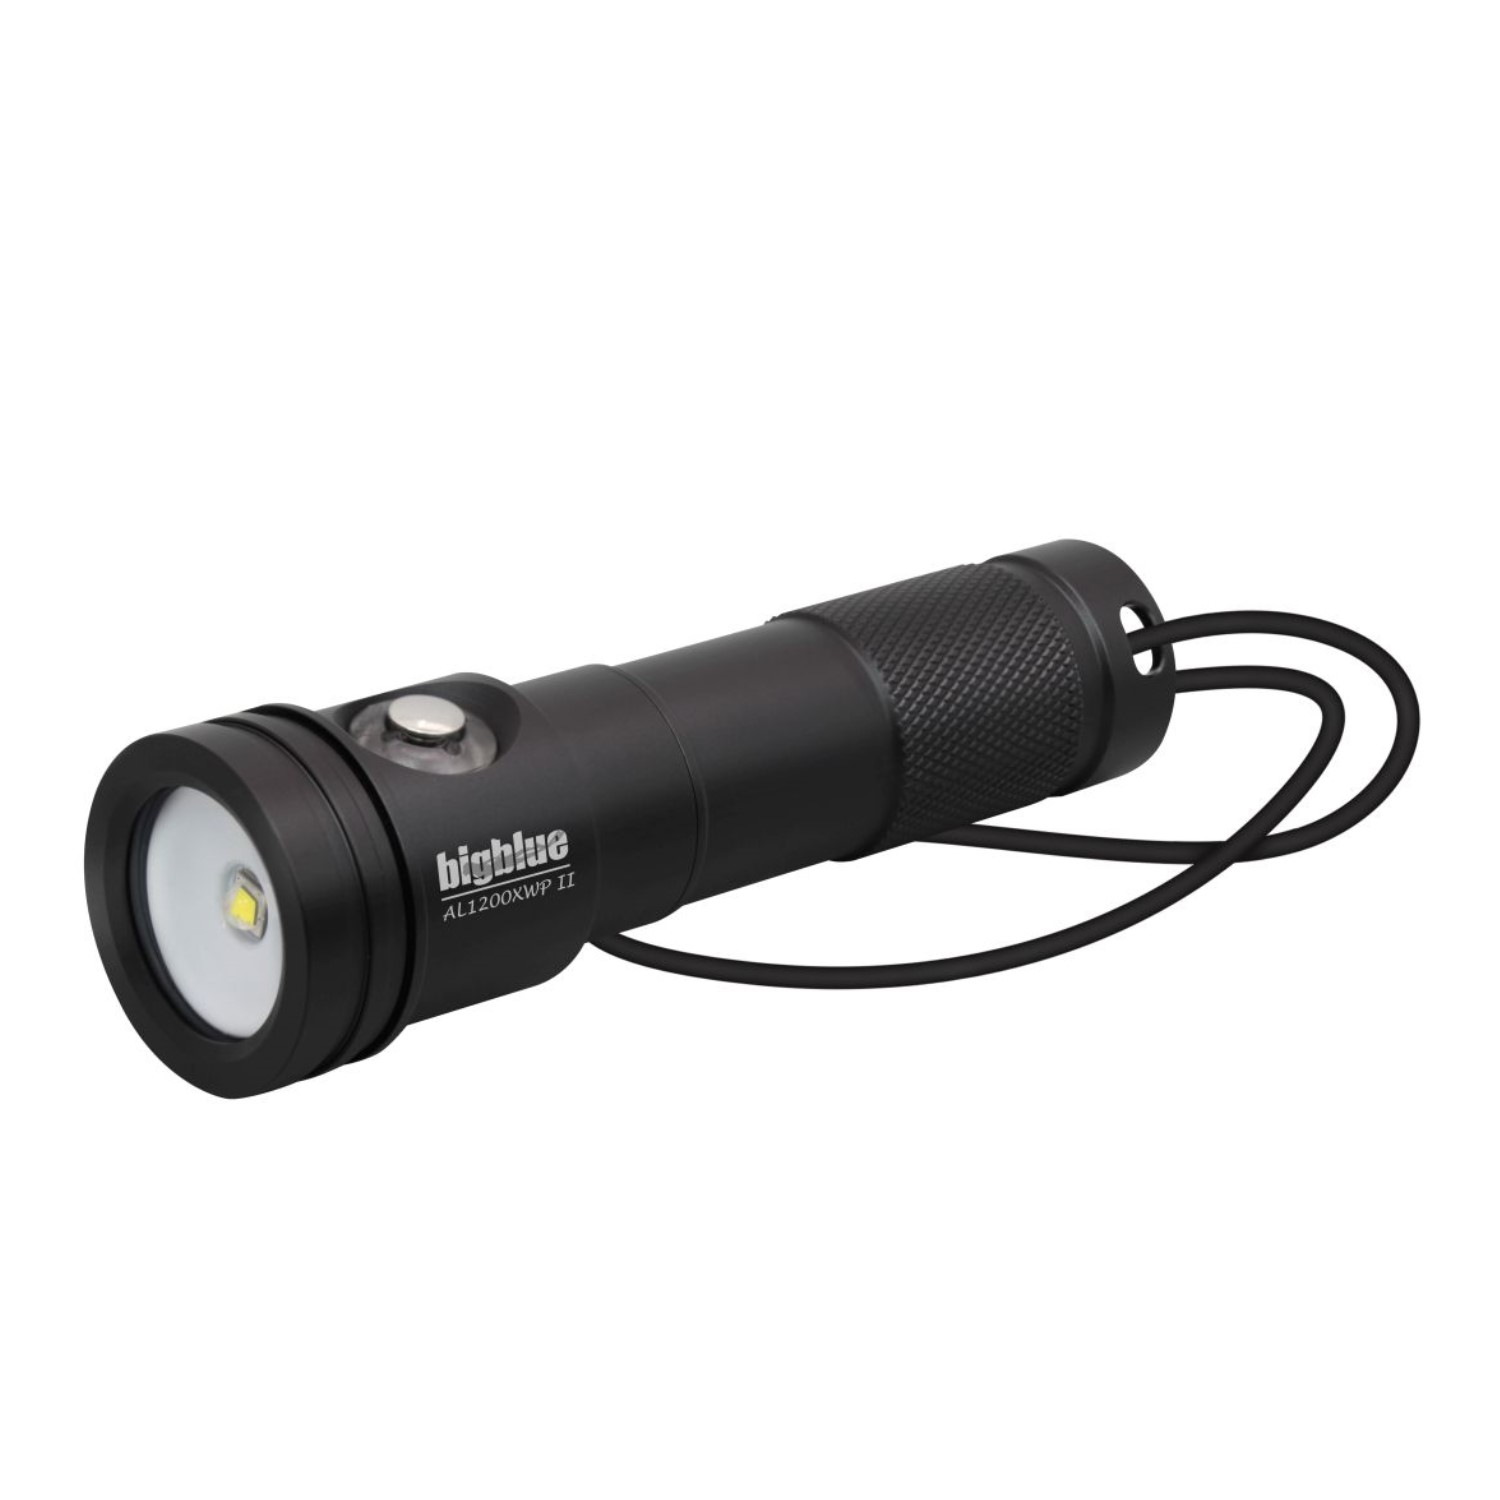 1200Lumen ExtraWide Beam LED Dive Light  Bigblue Dive